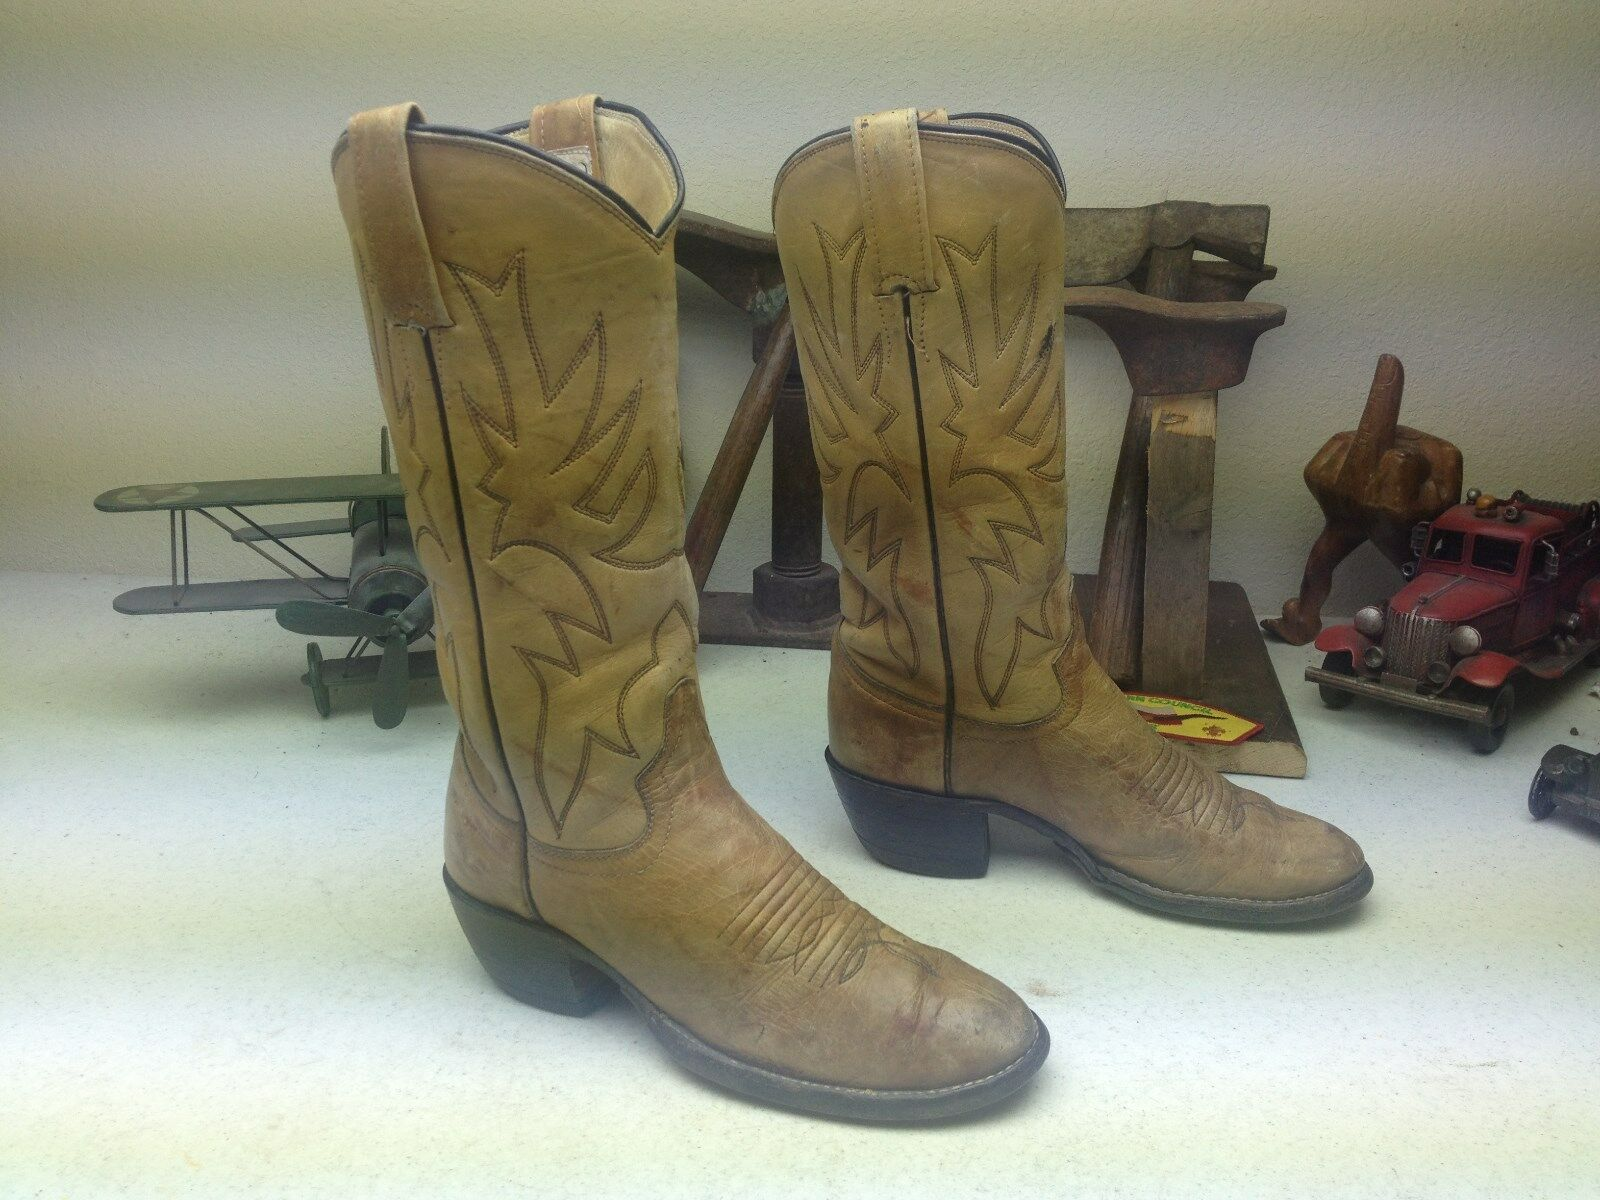 USA ADAMS AMBER AMBER AMBER DISTRESSED LEATHER ENGINEER ROCKABILLY RANCH WORK BOOTS 5.5 B 6478be